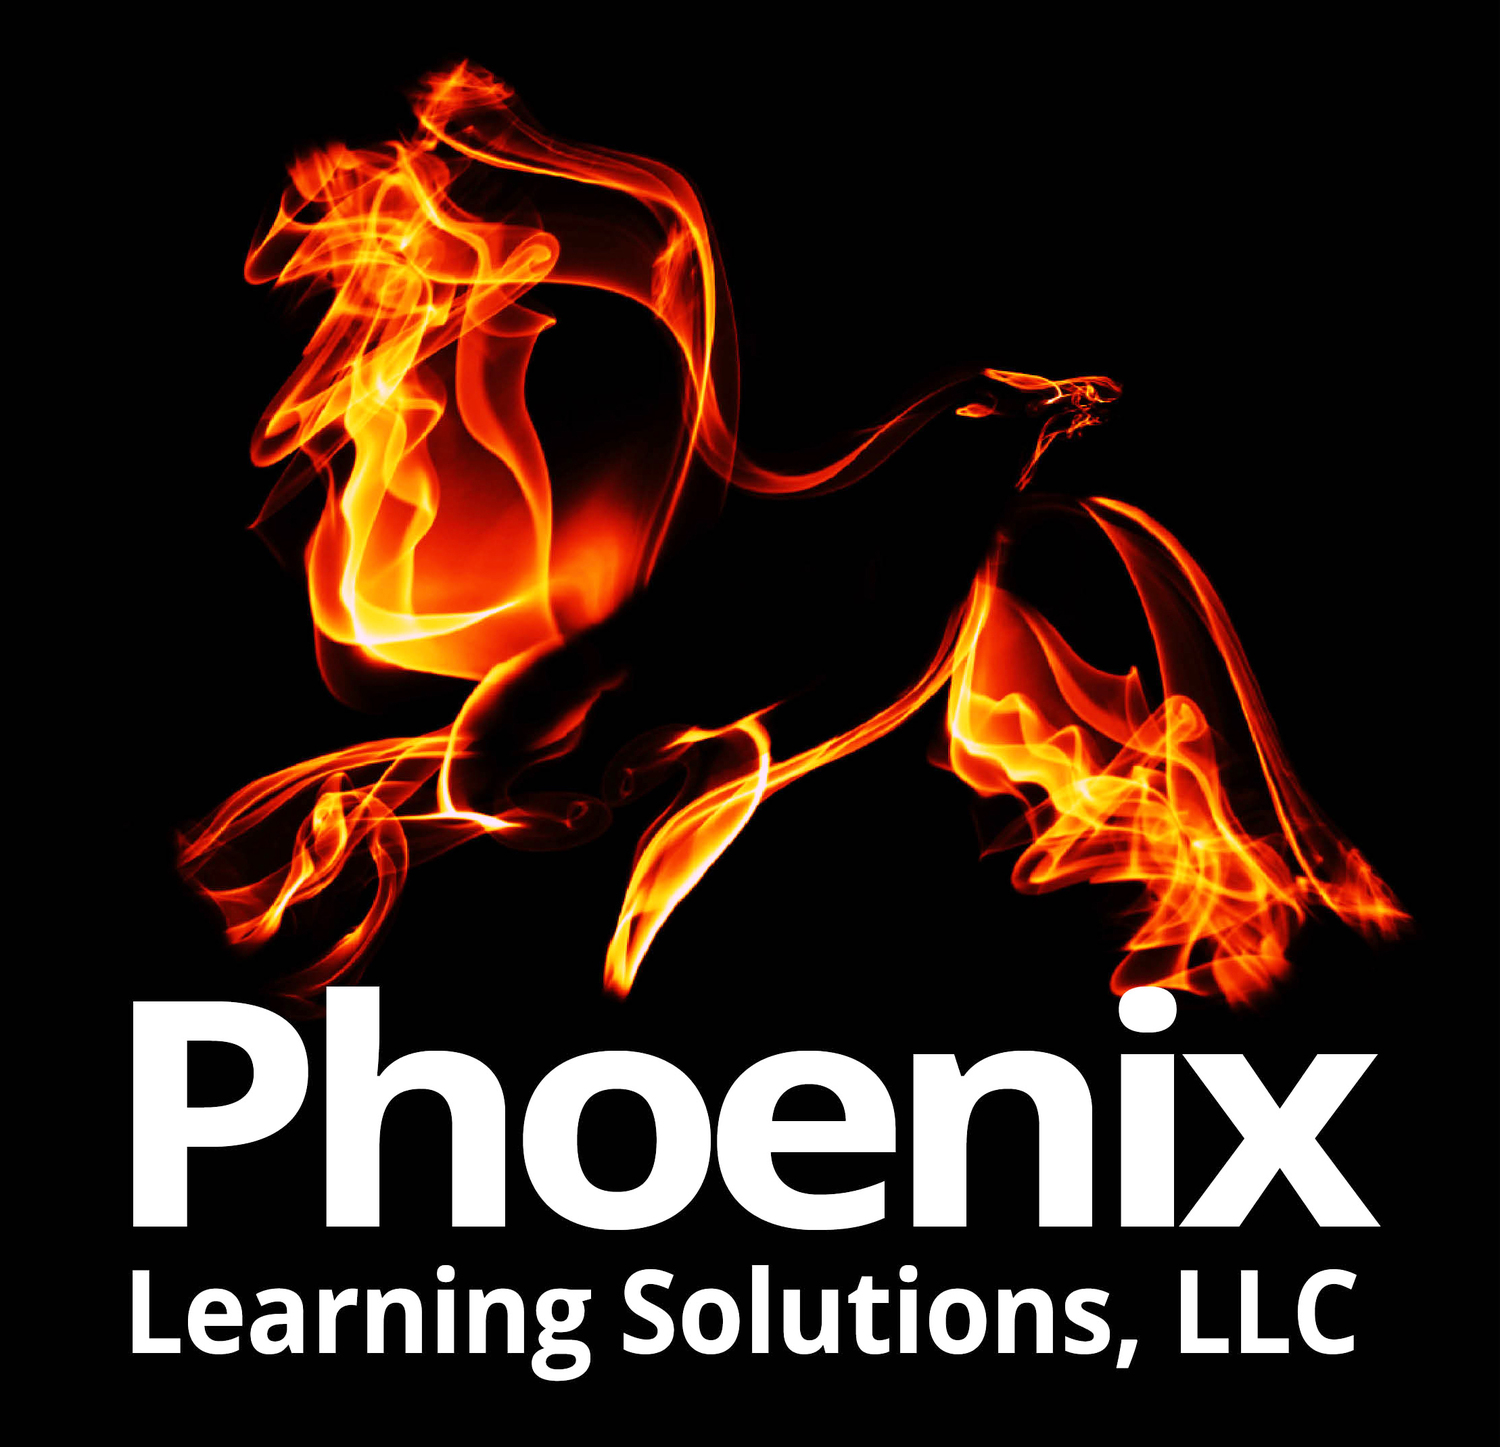 Phoenix Learning Solutions, LLC